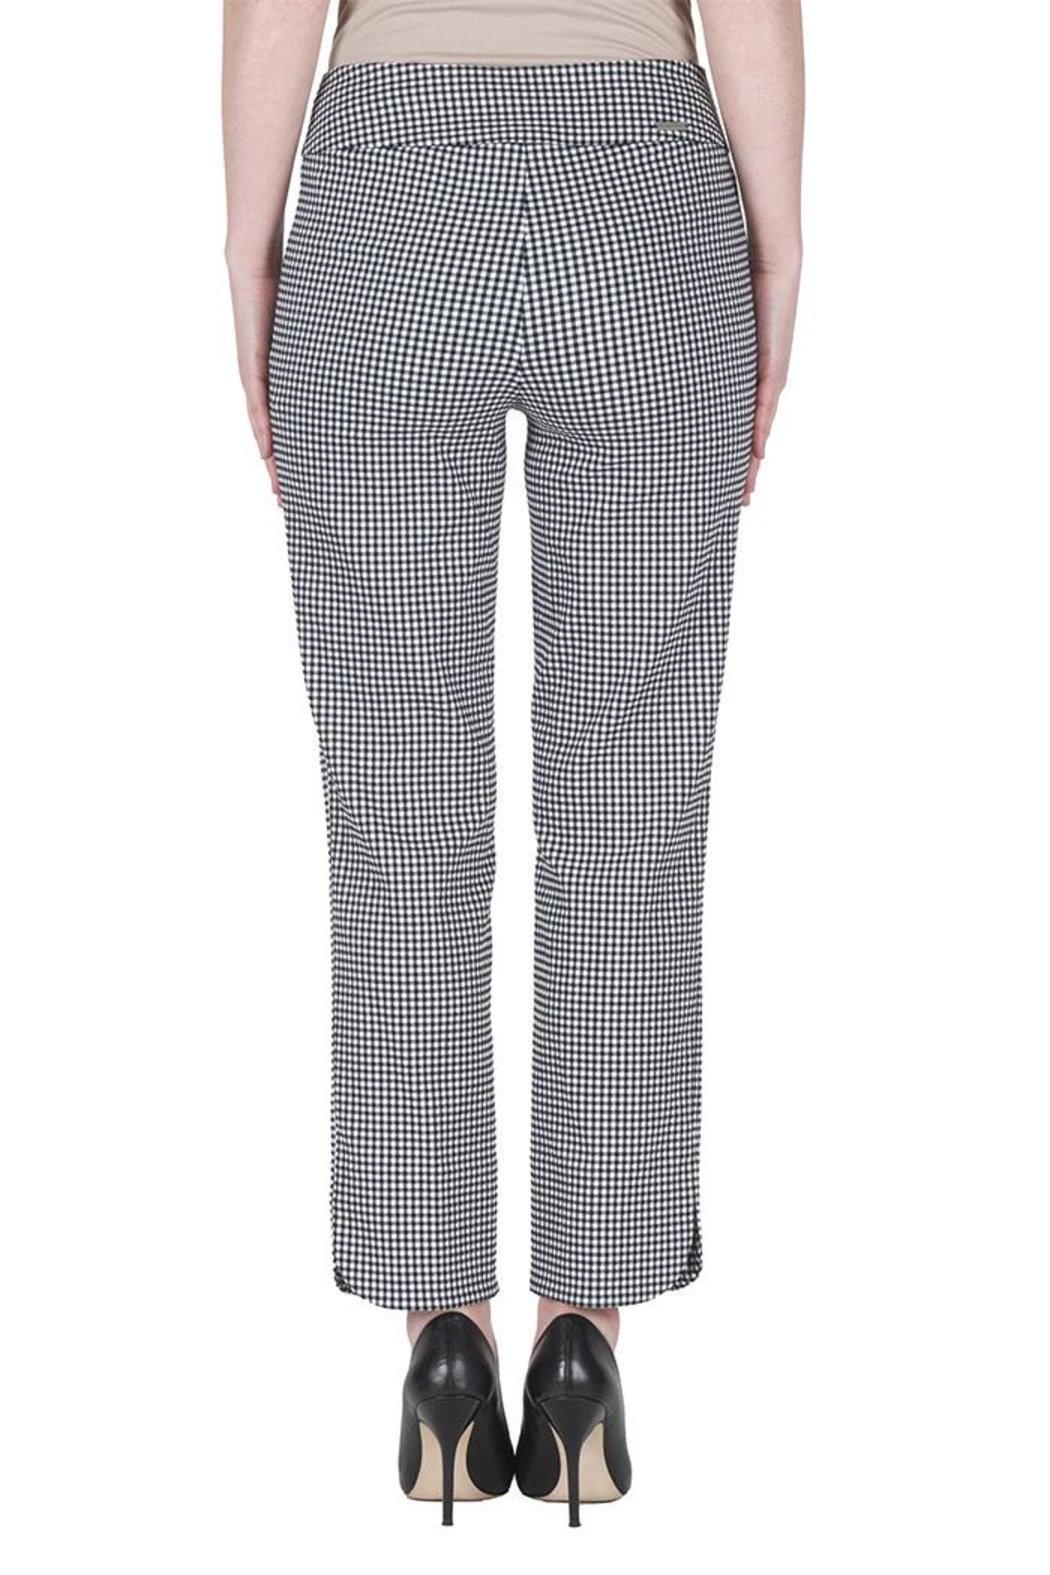 Joseph Ribkoff Gingham Ankle Pants - Side Cropped Image